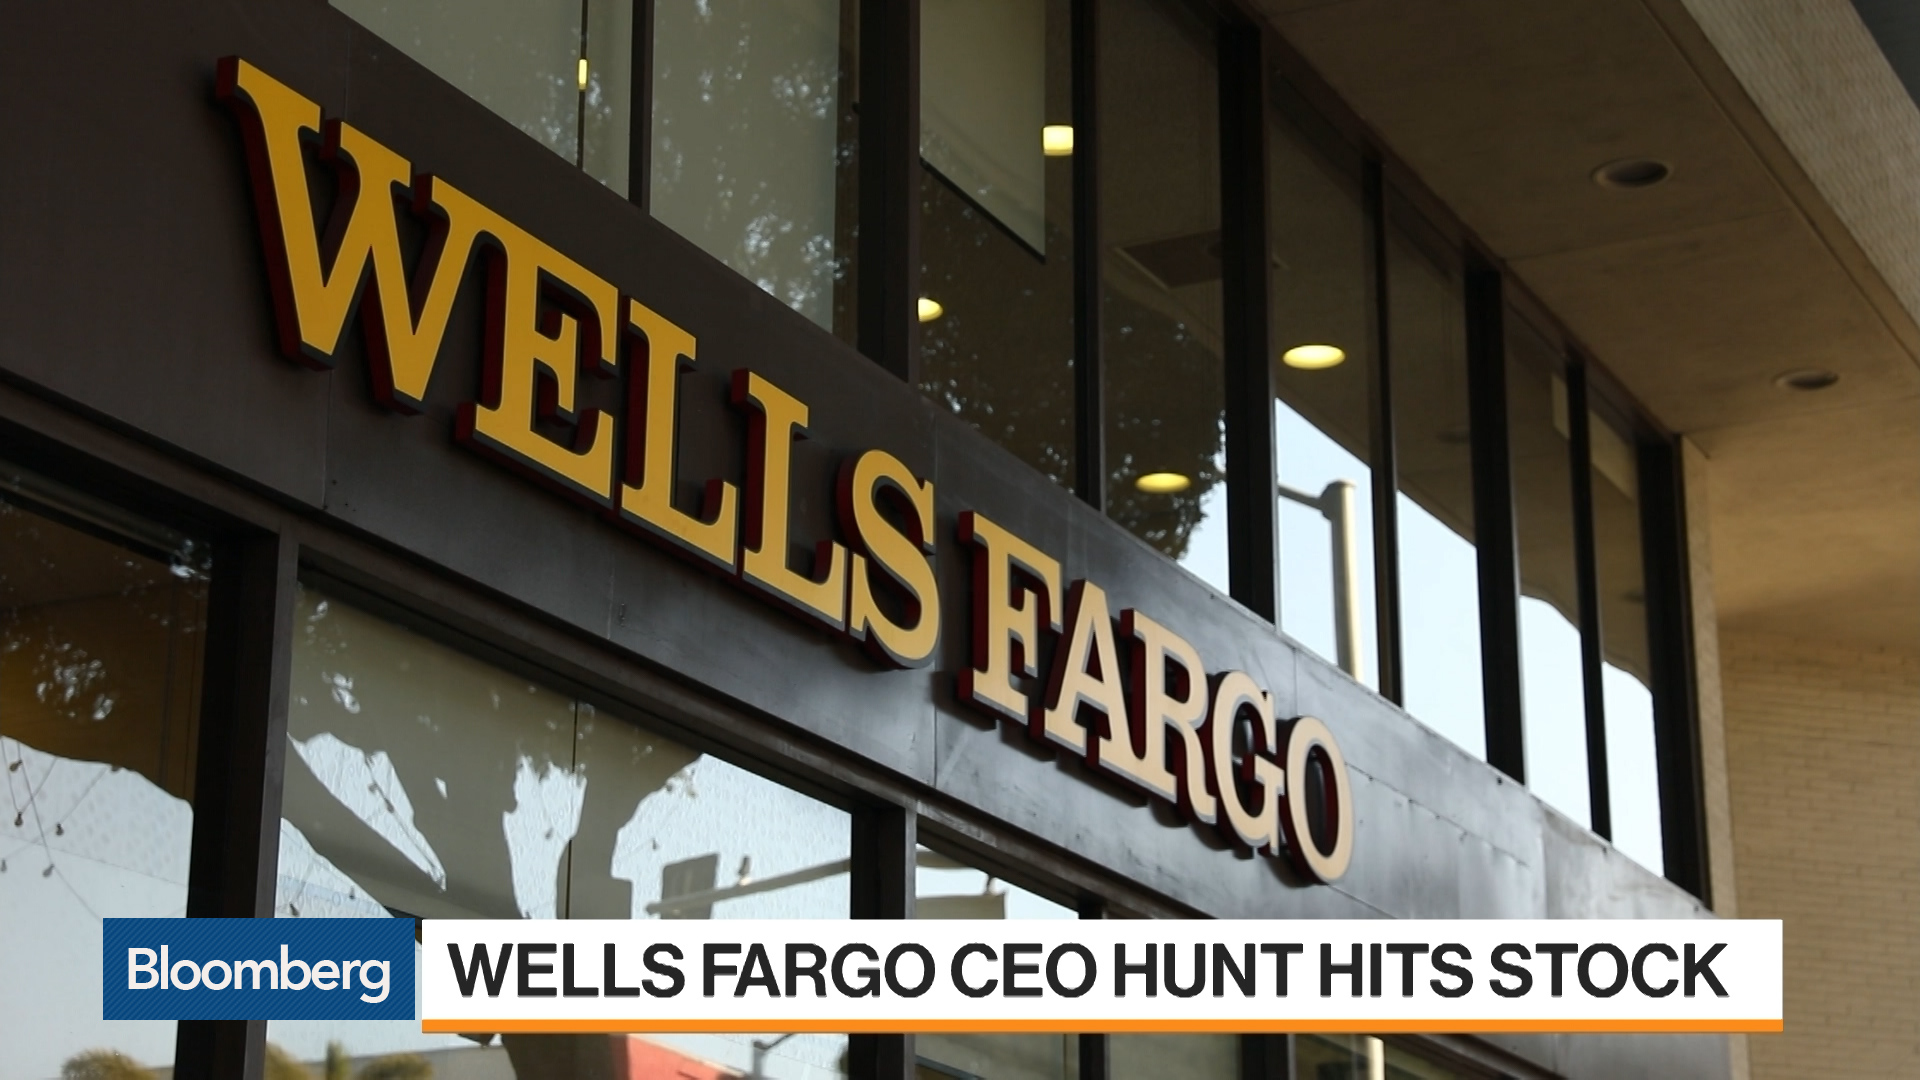 Wells Fargo CEO Search Takes Toll on Shares - Bloomberg